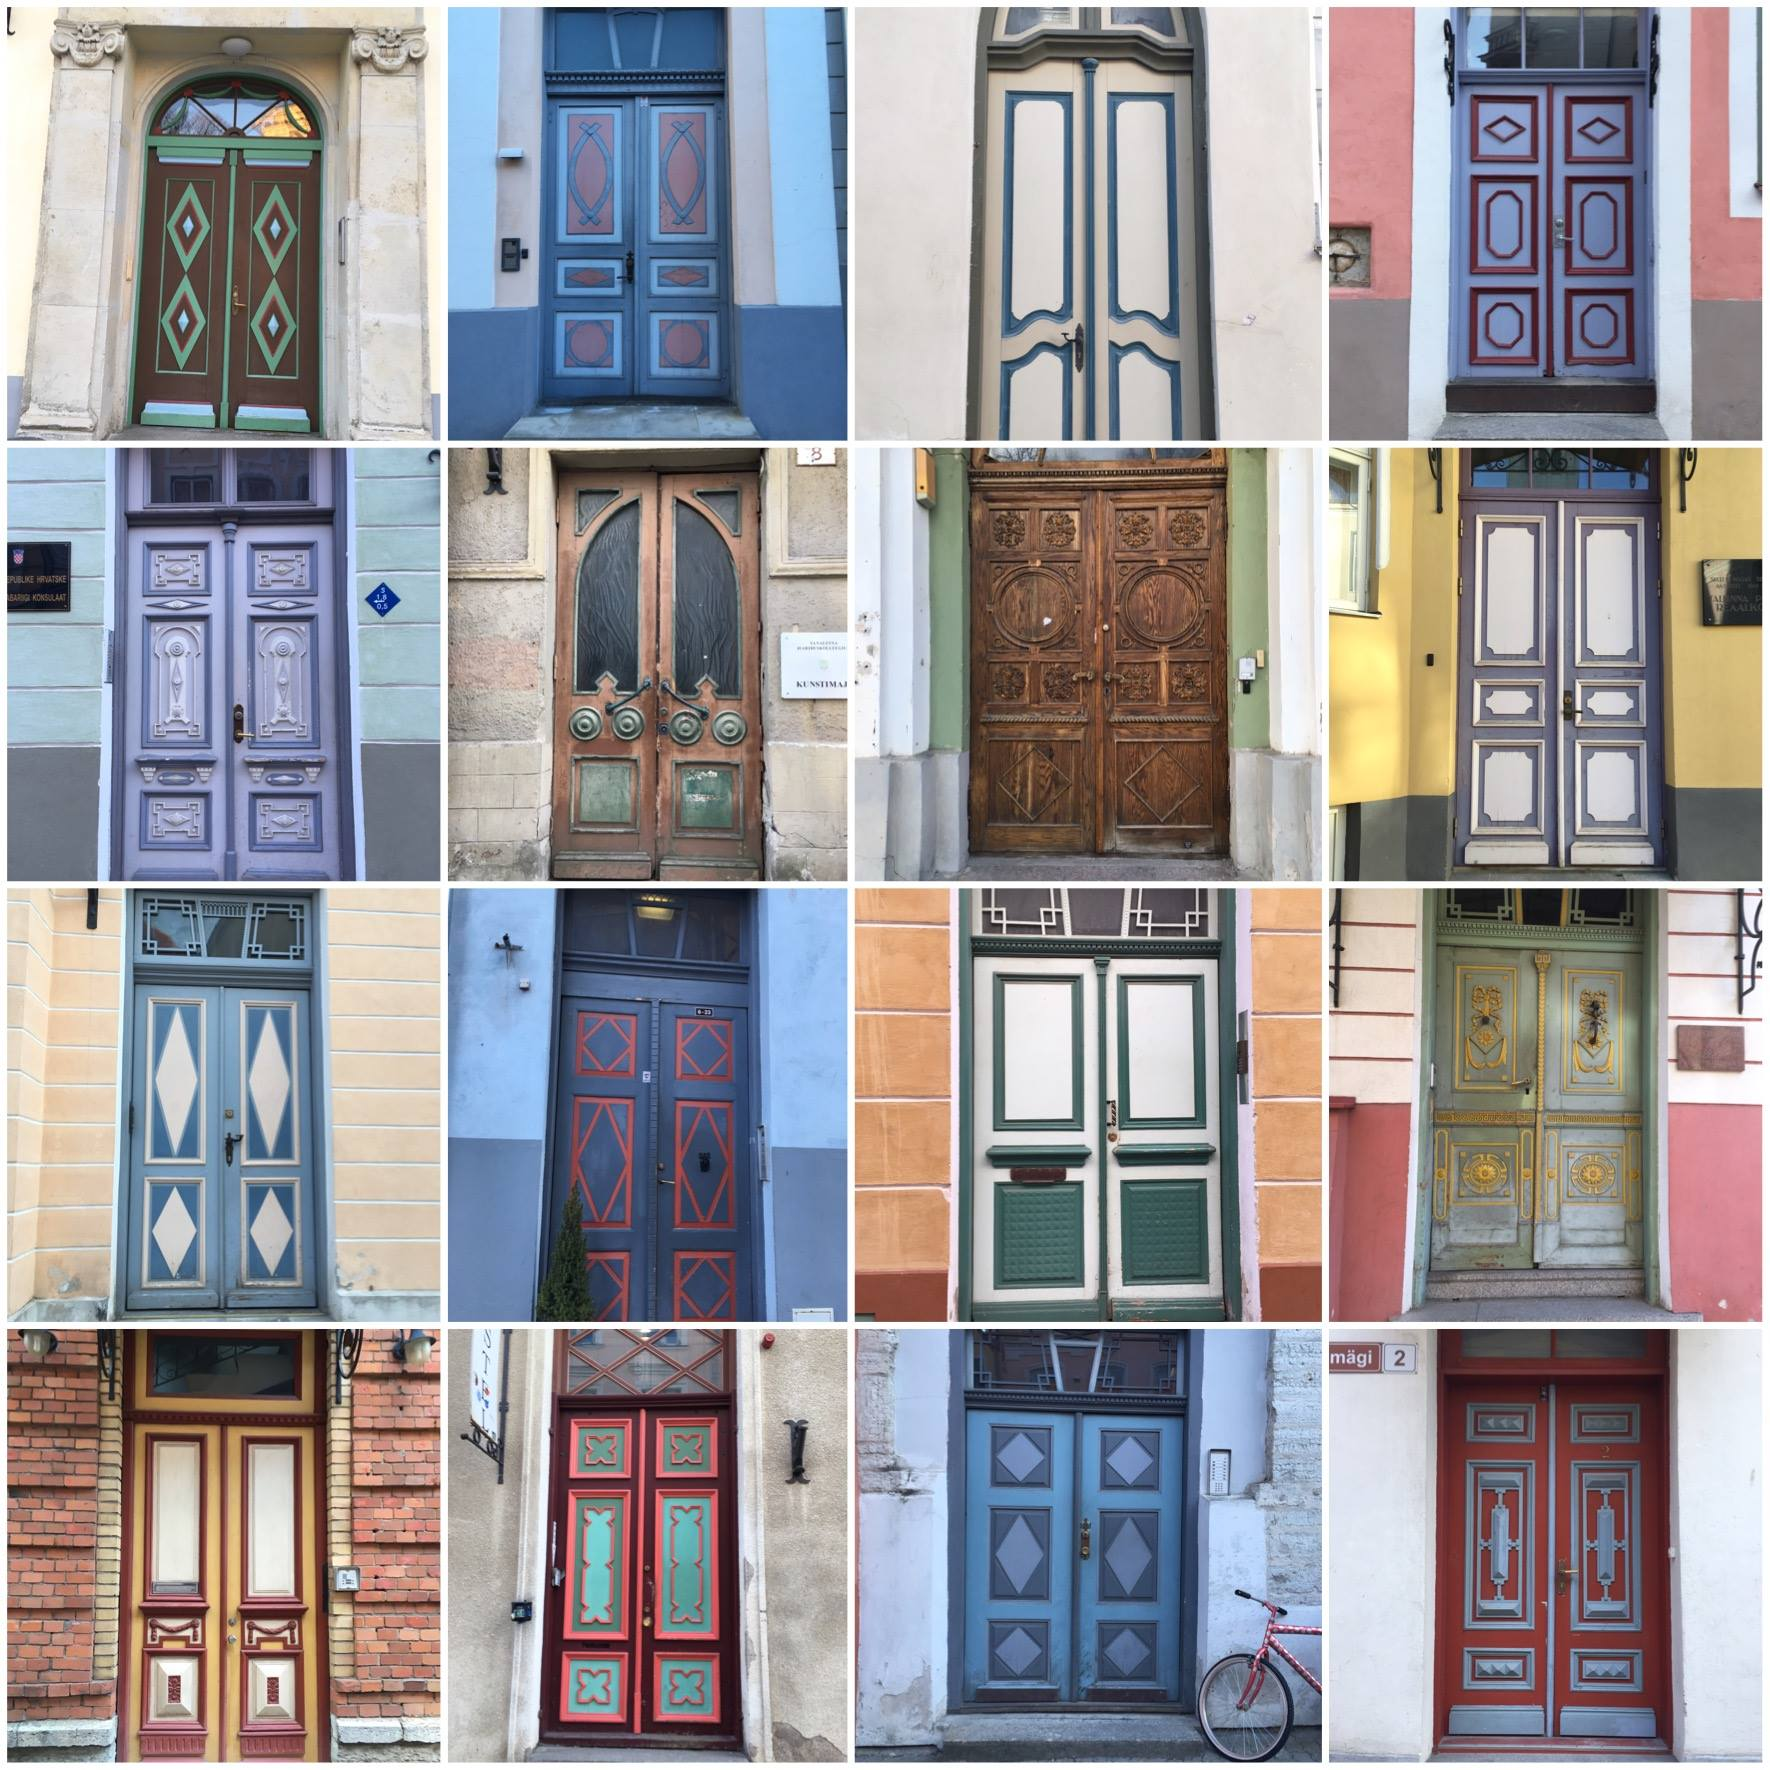 Why traveling alone might just not be for me - or how I took pictures of all the doors in Tallin